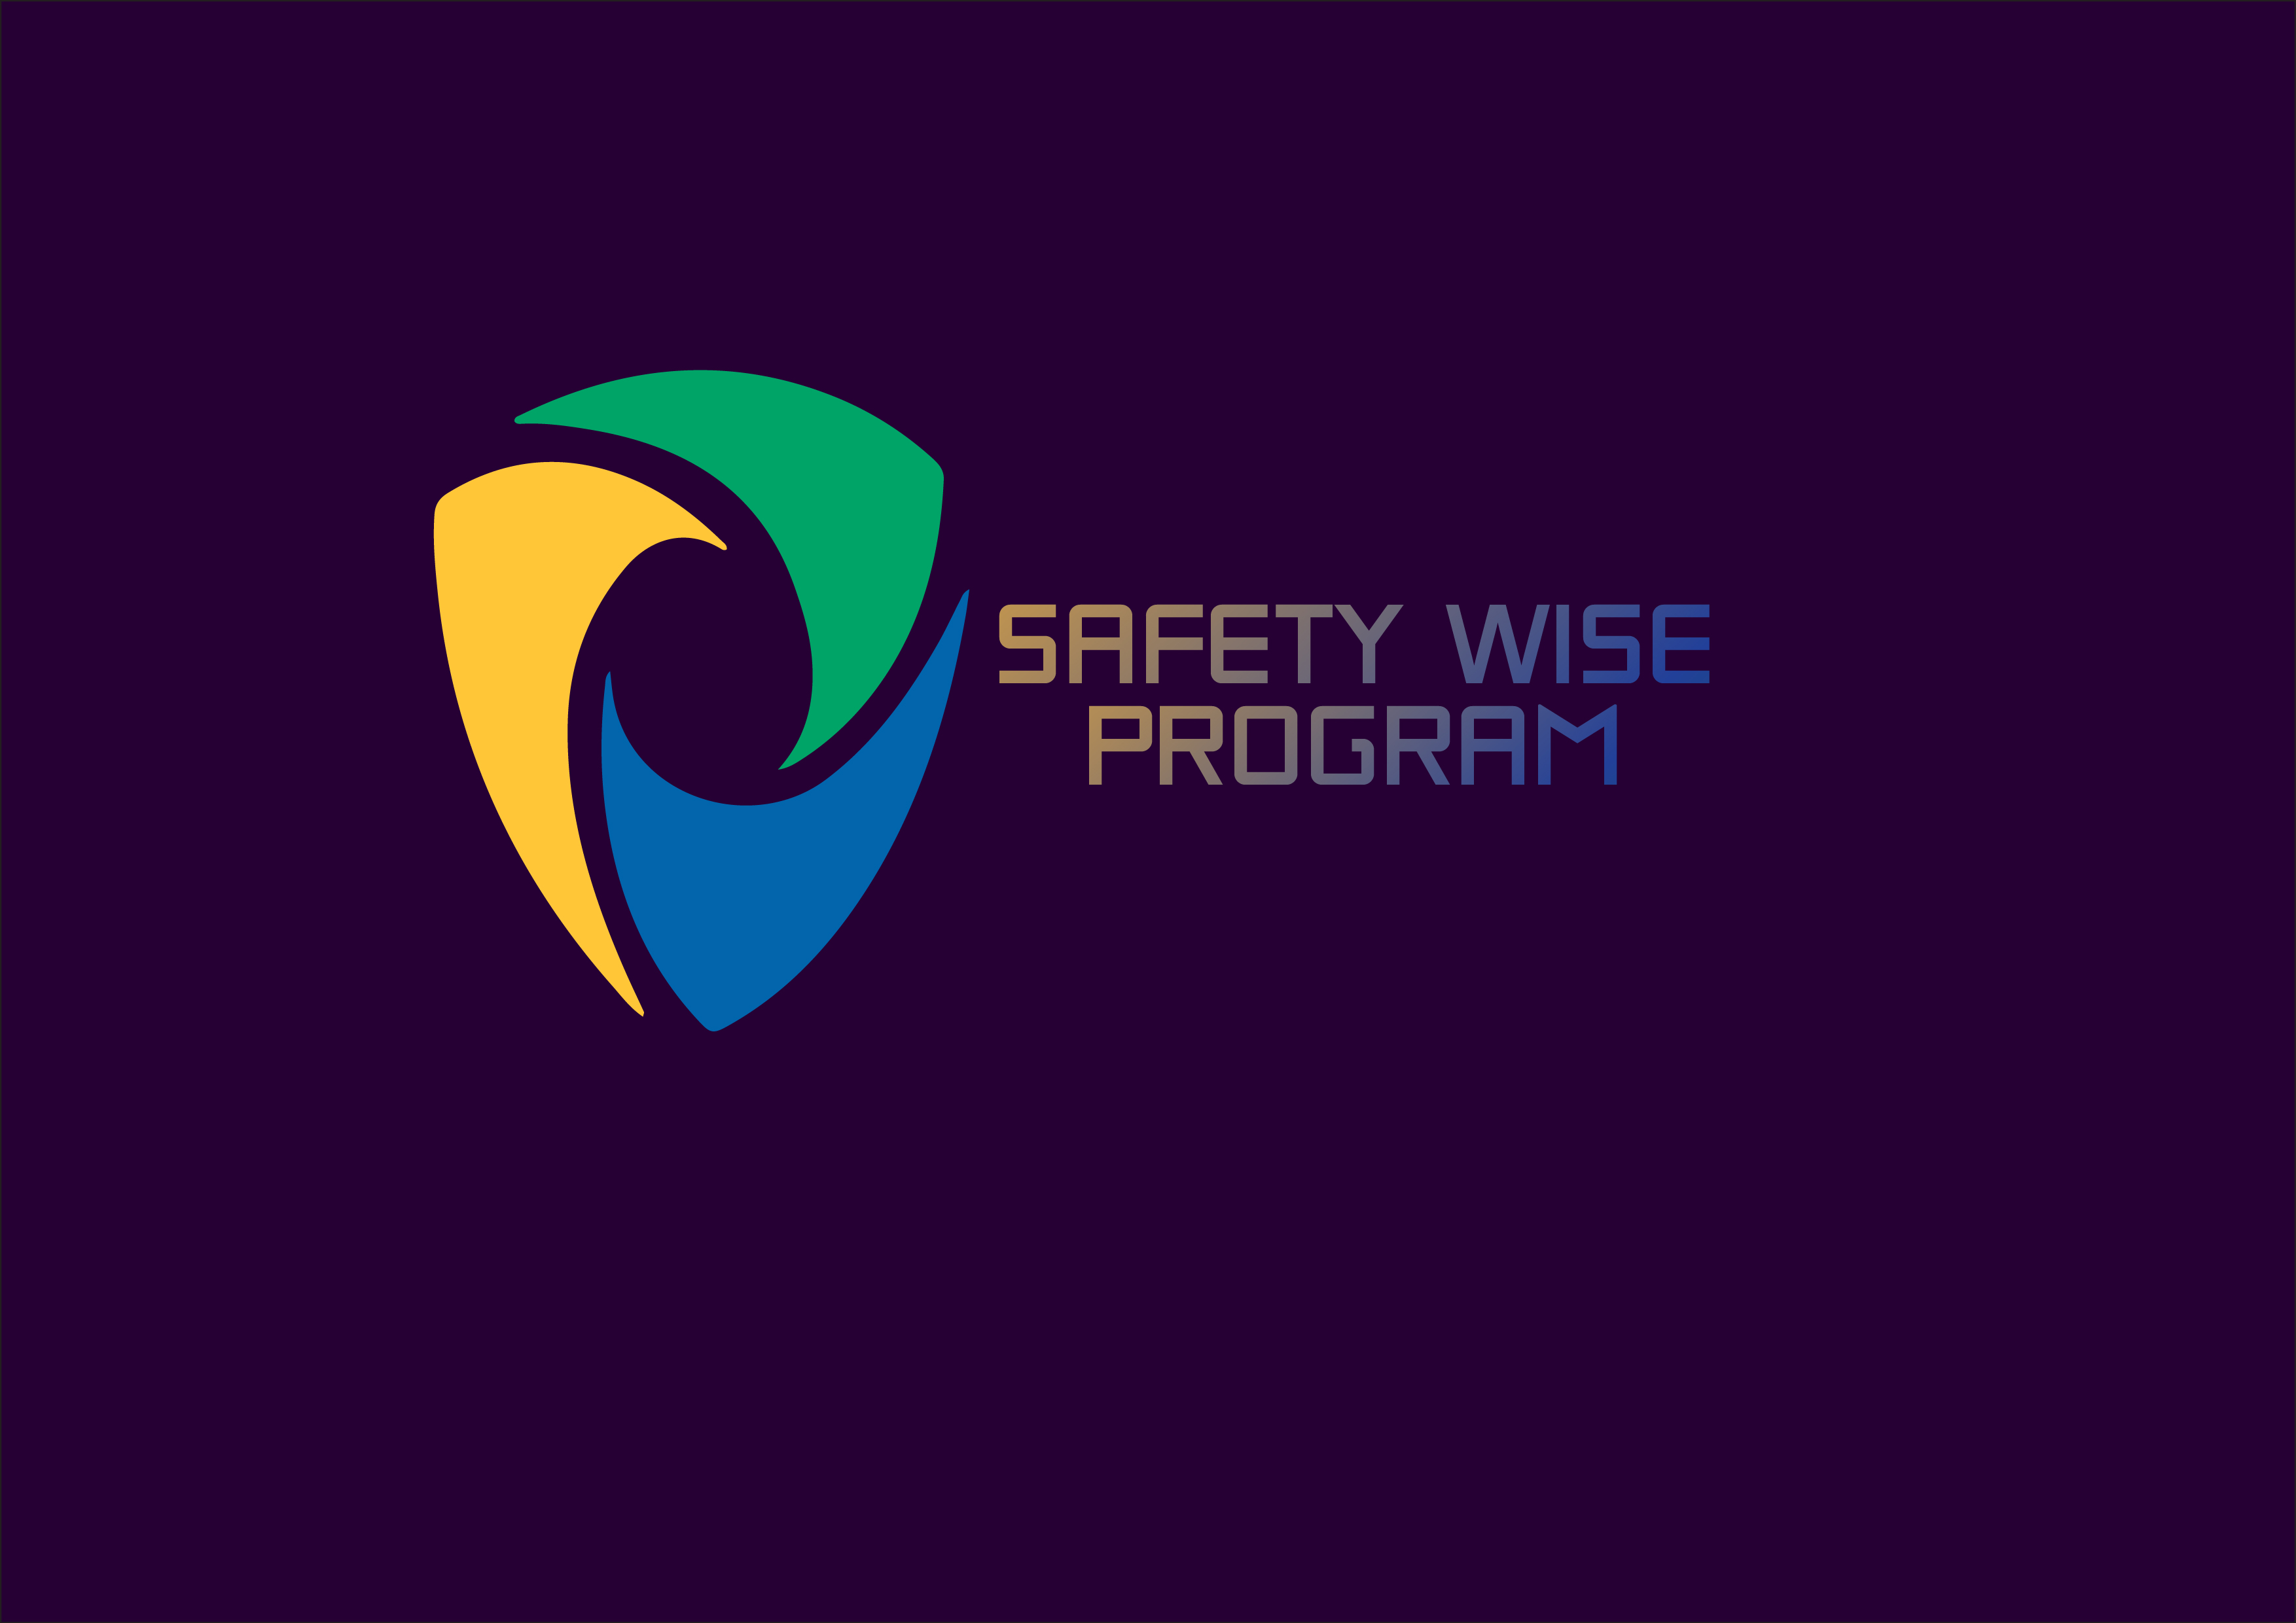 Logo Design by Anum Aamir - Entry No. 96 in the Logo Design Contest New Logo Design for Safety Wise Program.